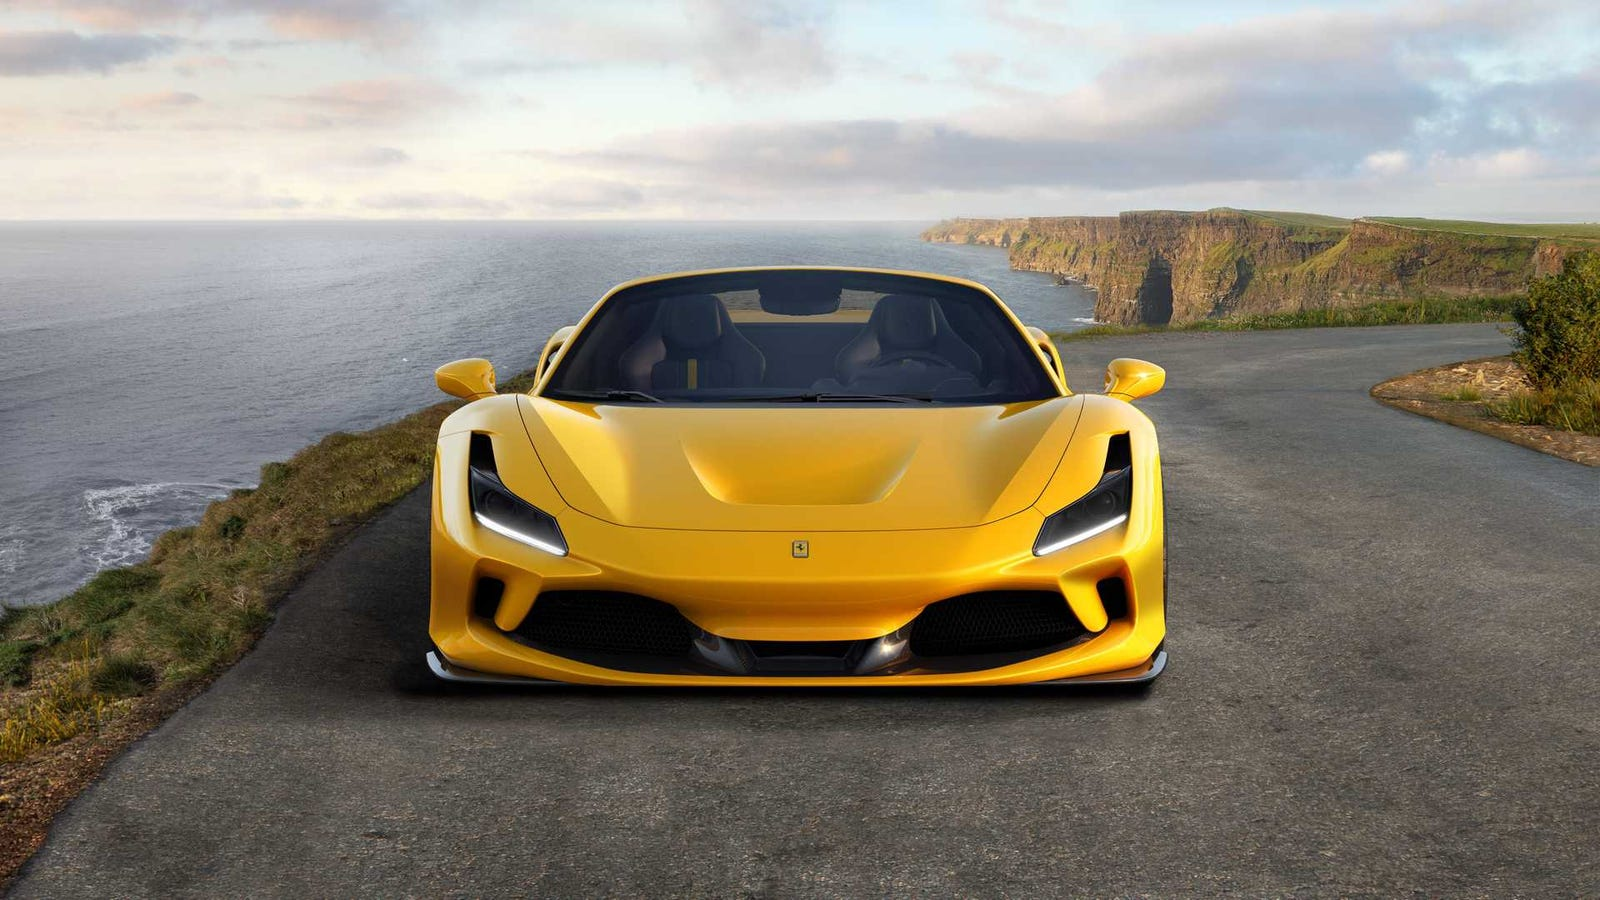 Illustration for article titled 2020 Ferrari F8 Spider: This Is It